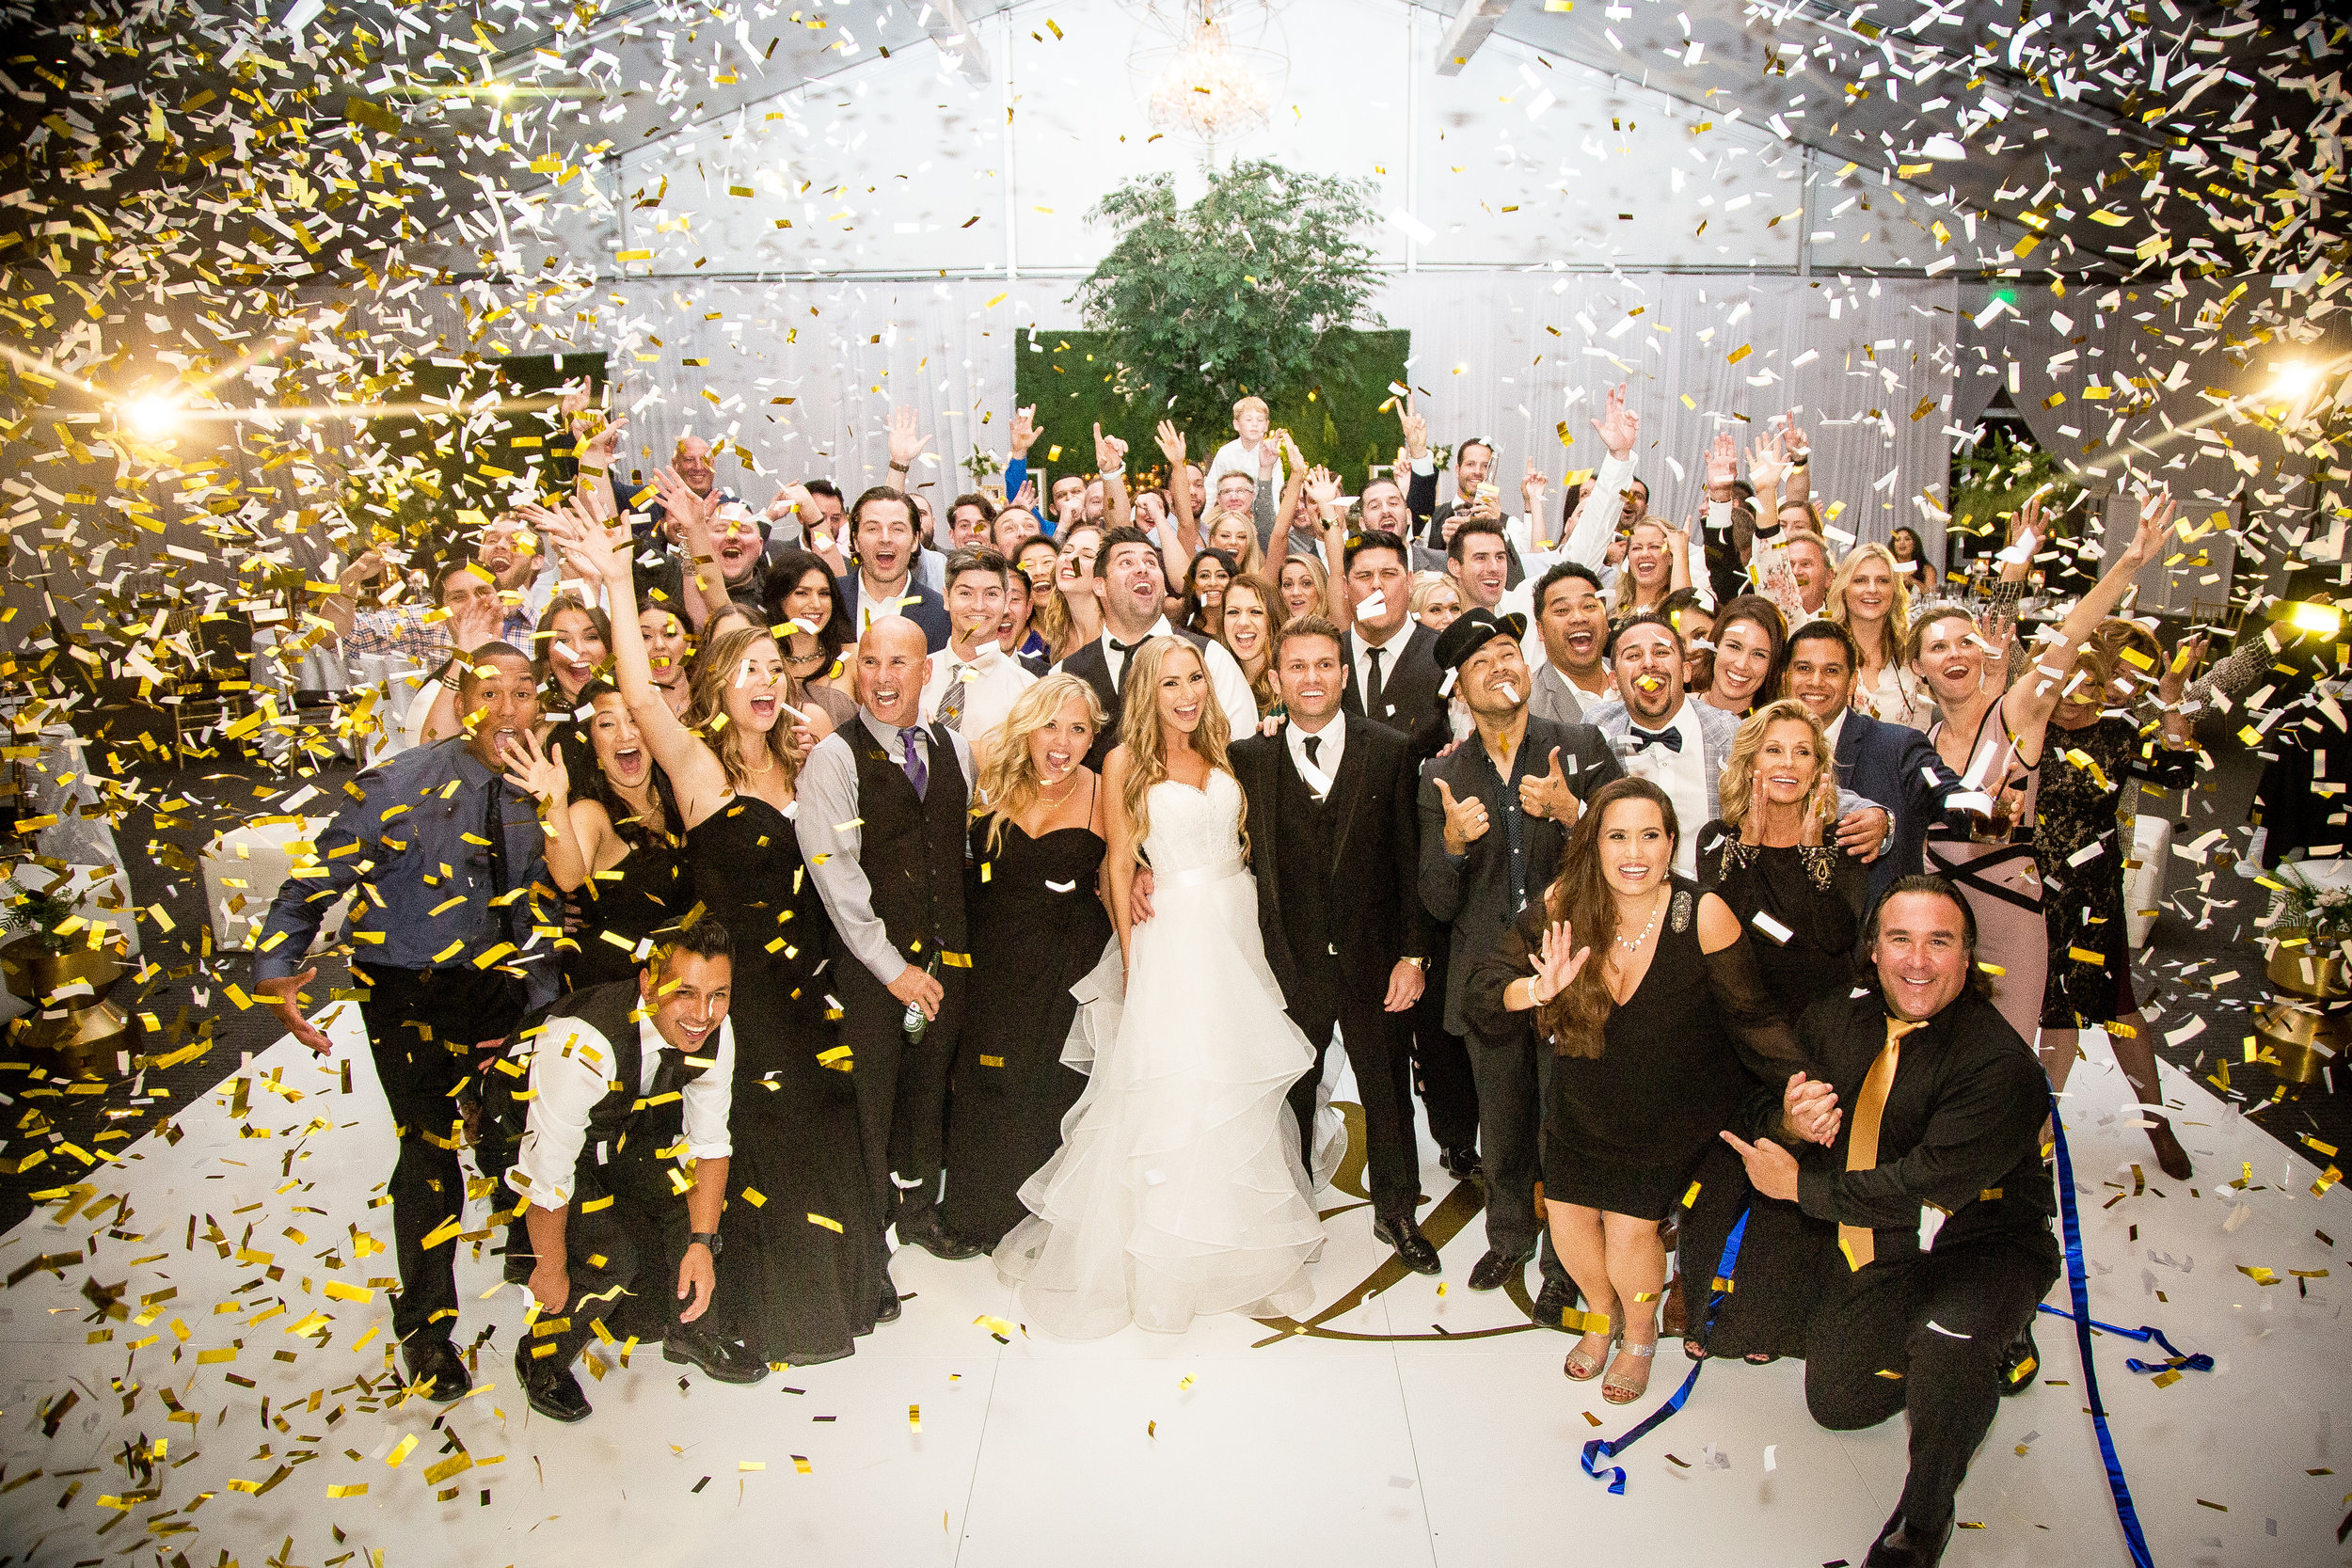 Wedding Group Photo with Confetti